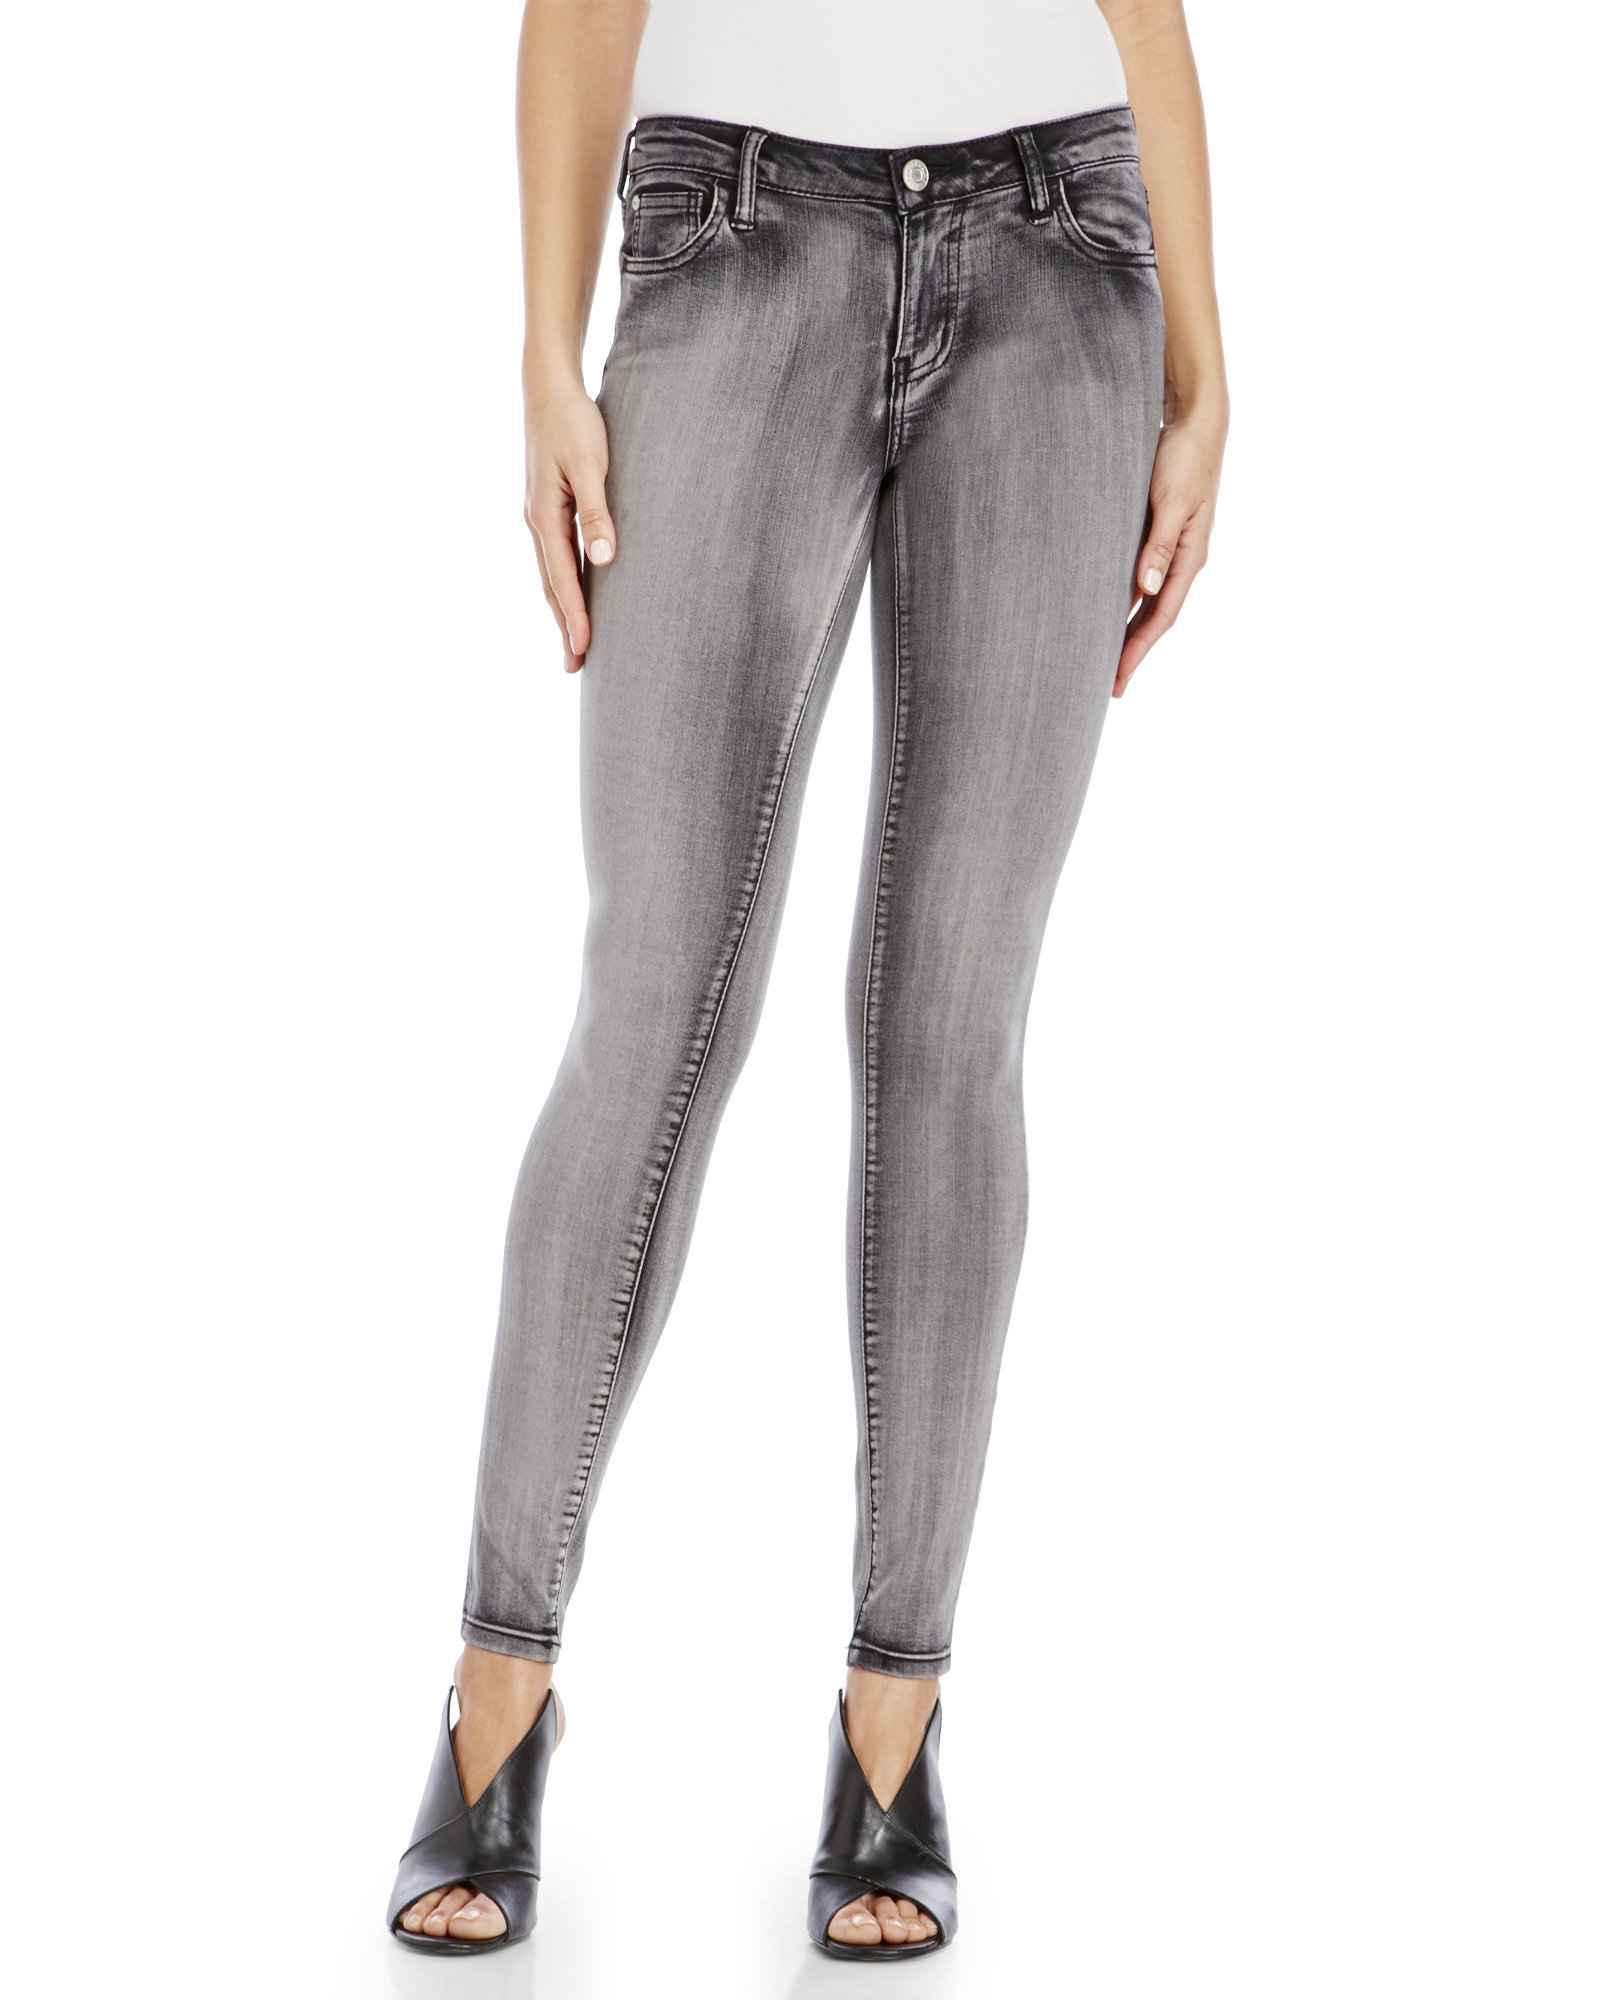 6046a70e601 Lyst - Celebrity Pink Faded Black Skinny Jeans in Gray